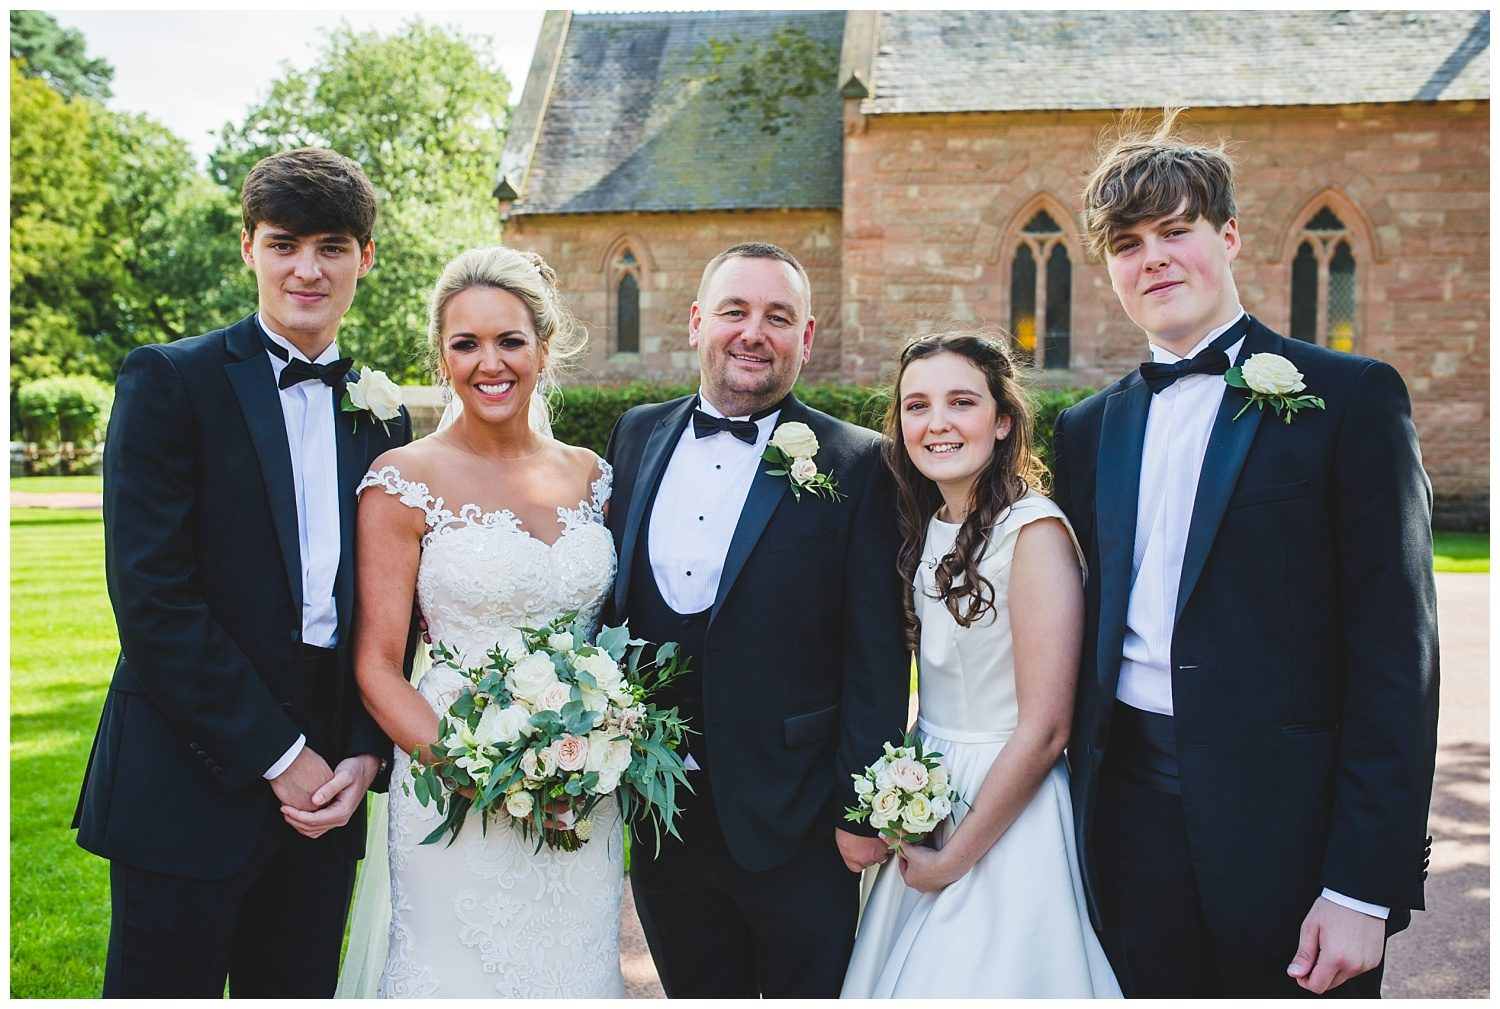 Family portrait at Peckforton Castle wedding